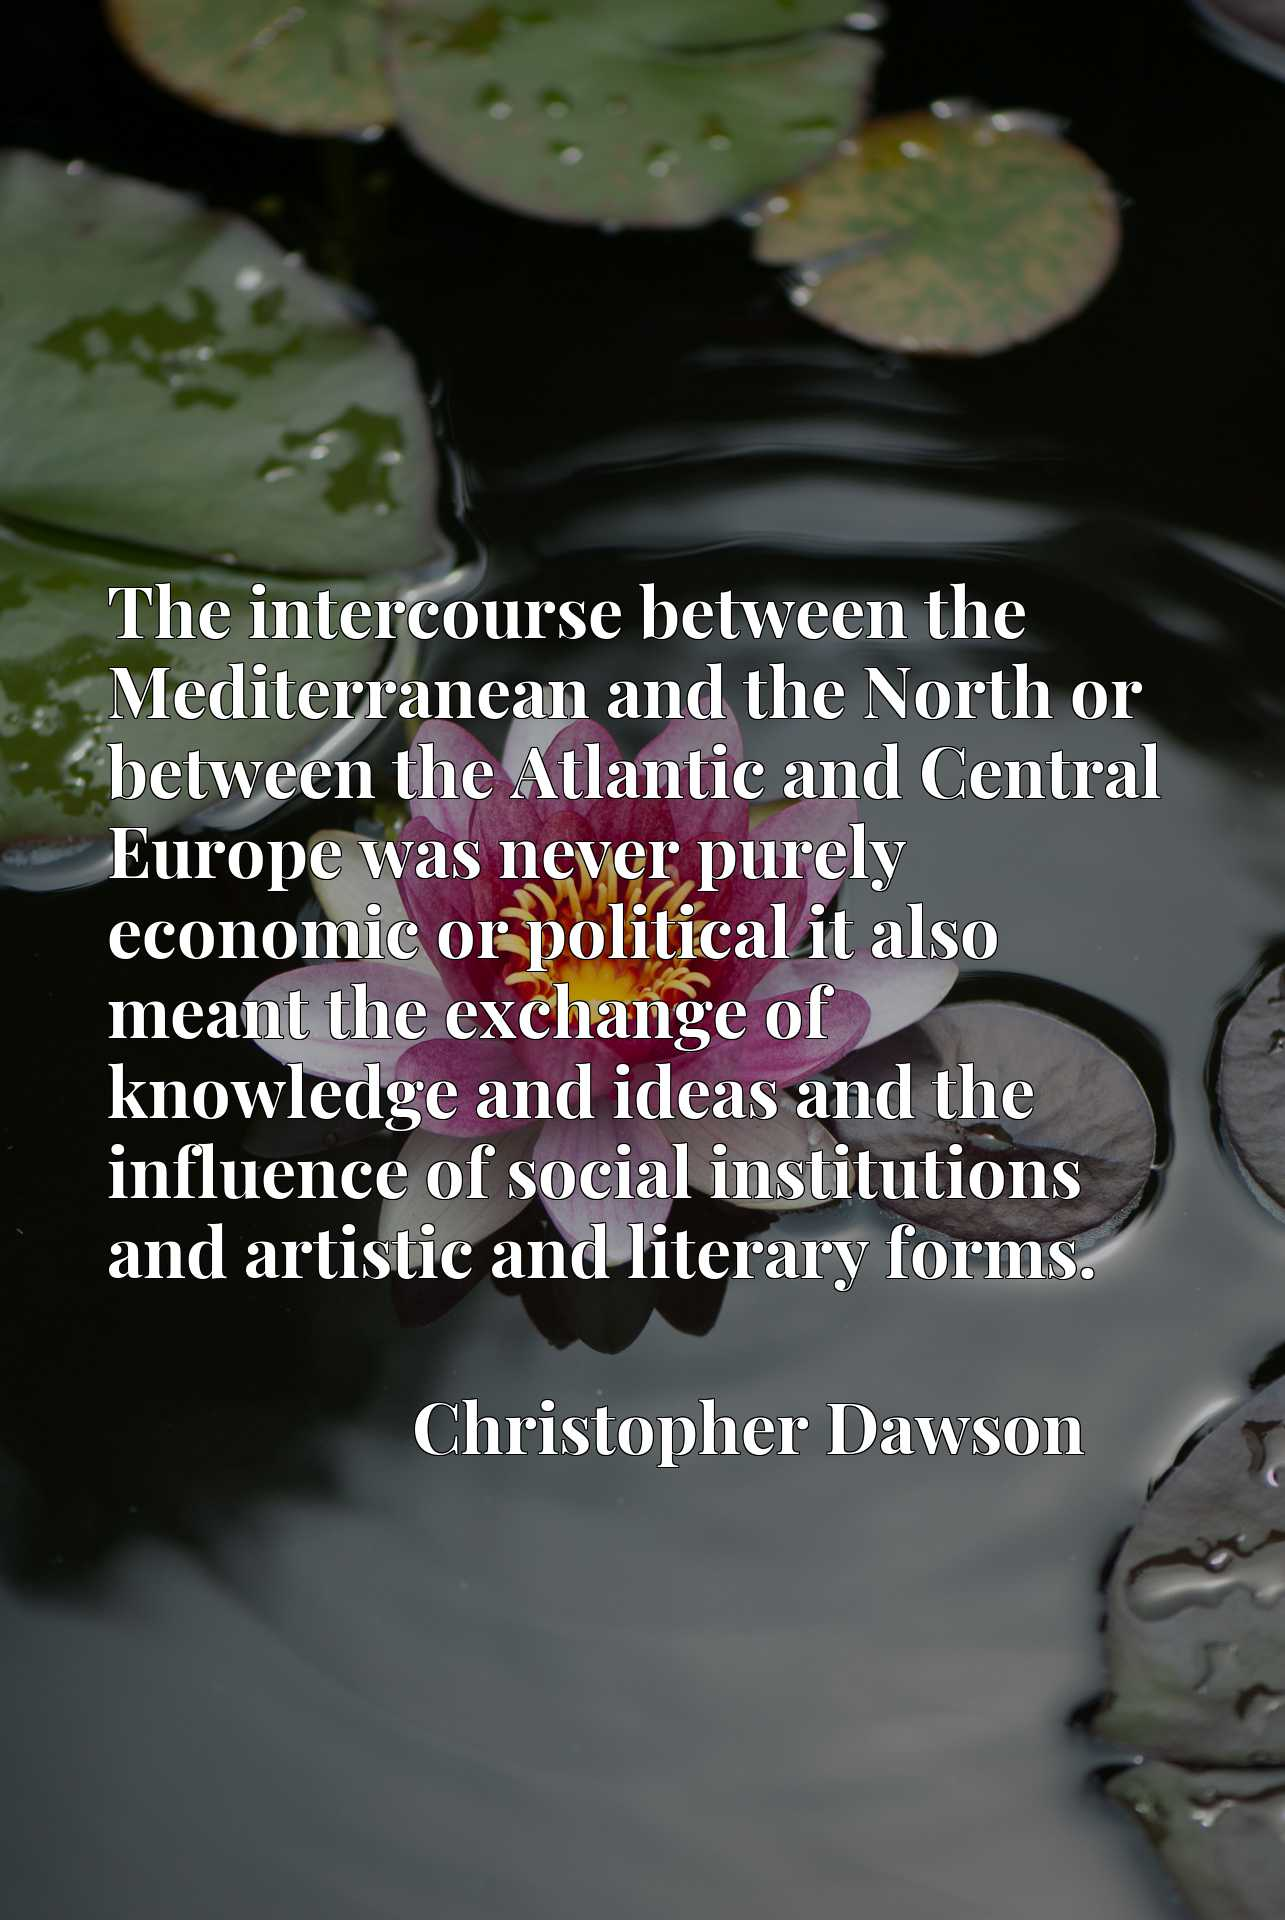 Quote Picture :The intercourse between the Mediterranean and the North or between the Atlantic and Central Europe was never purely economic or political it also meant the exchange of knowledge and ideas and the influence of social institutions and artistic and literary forms.